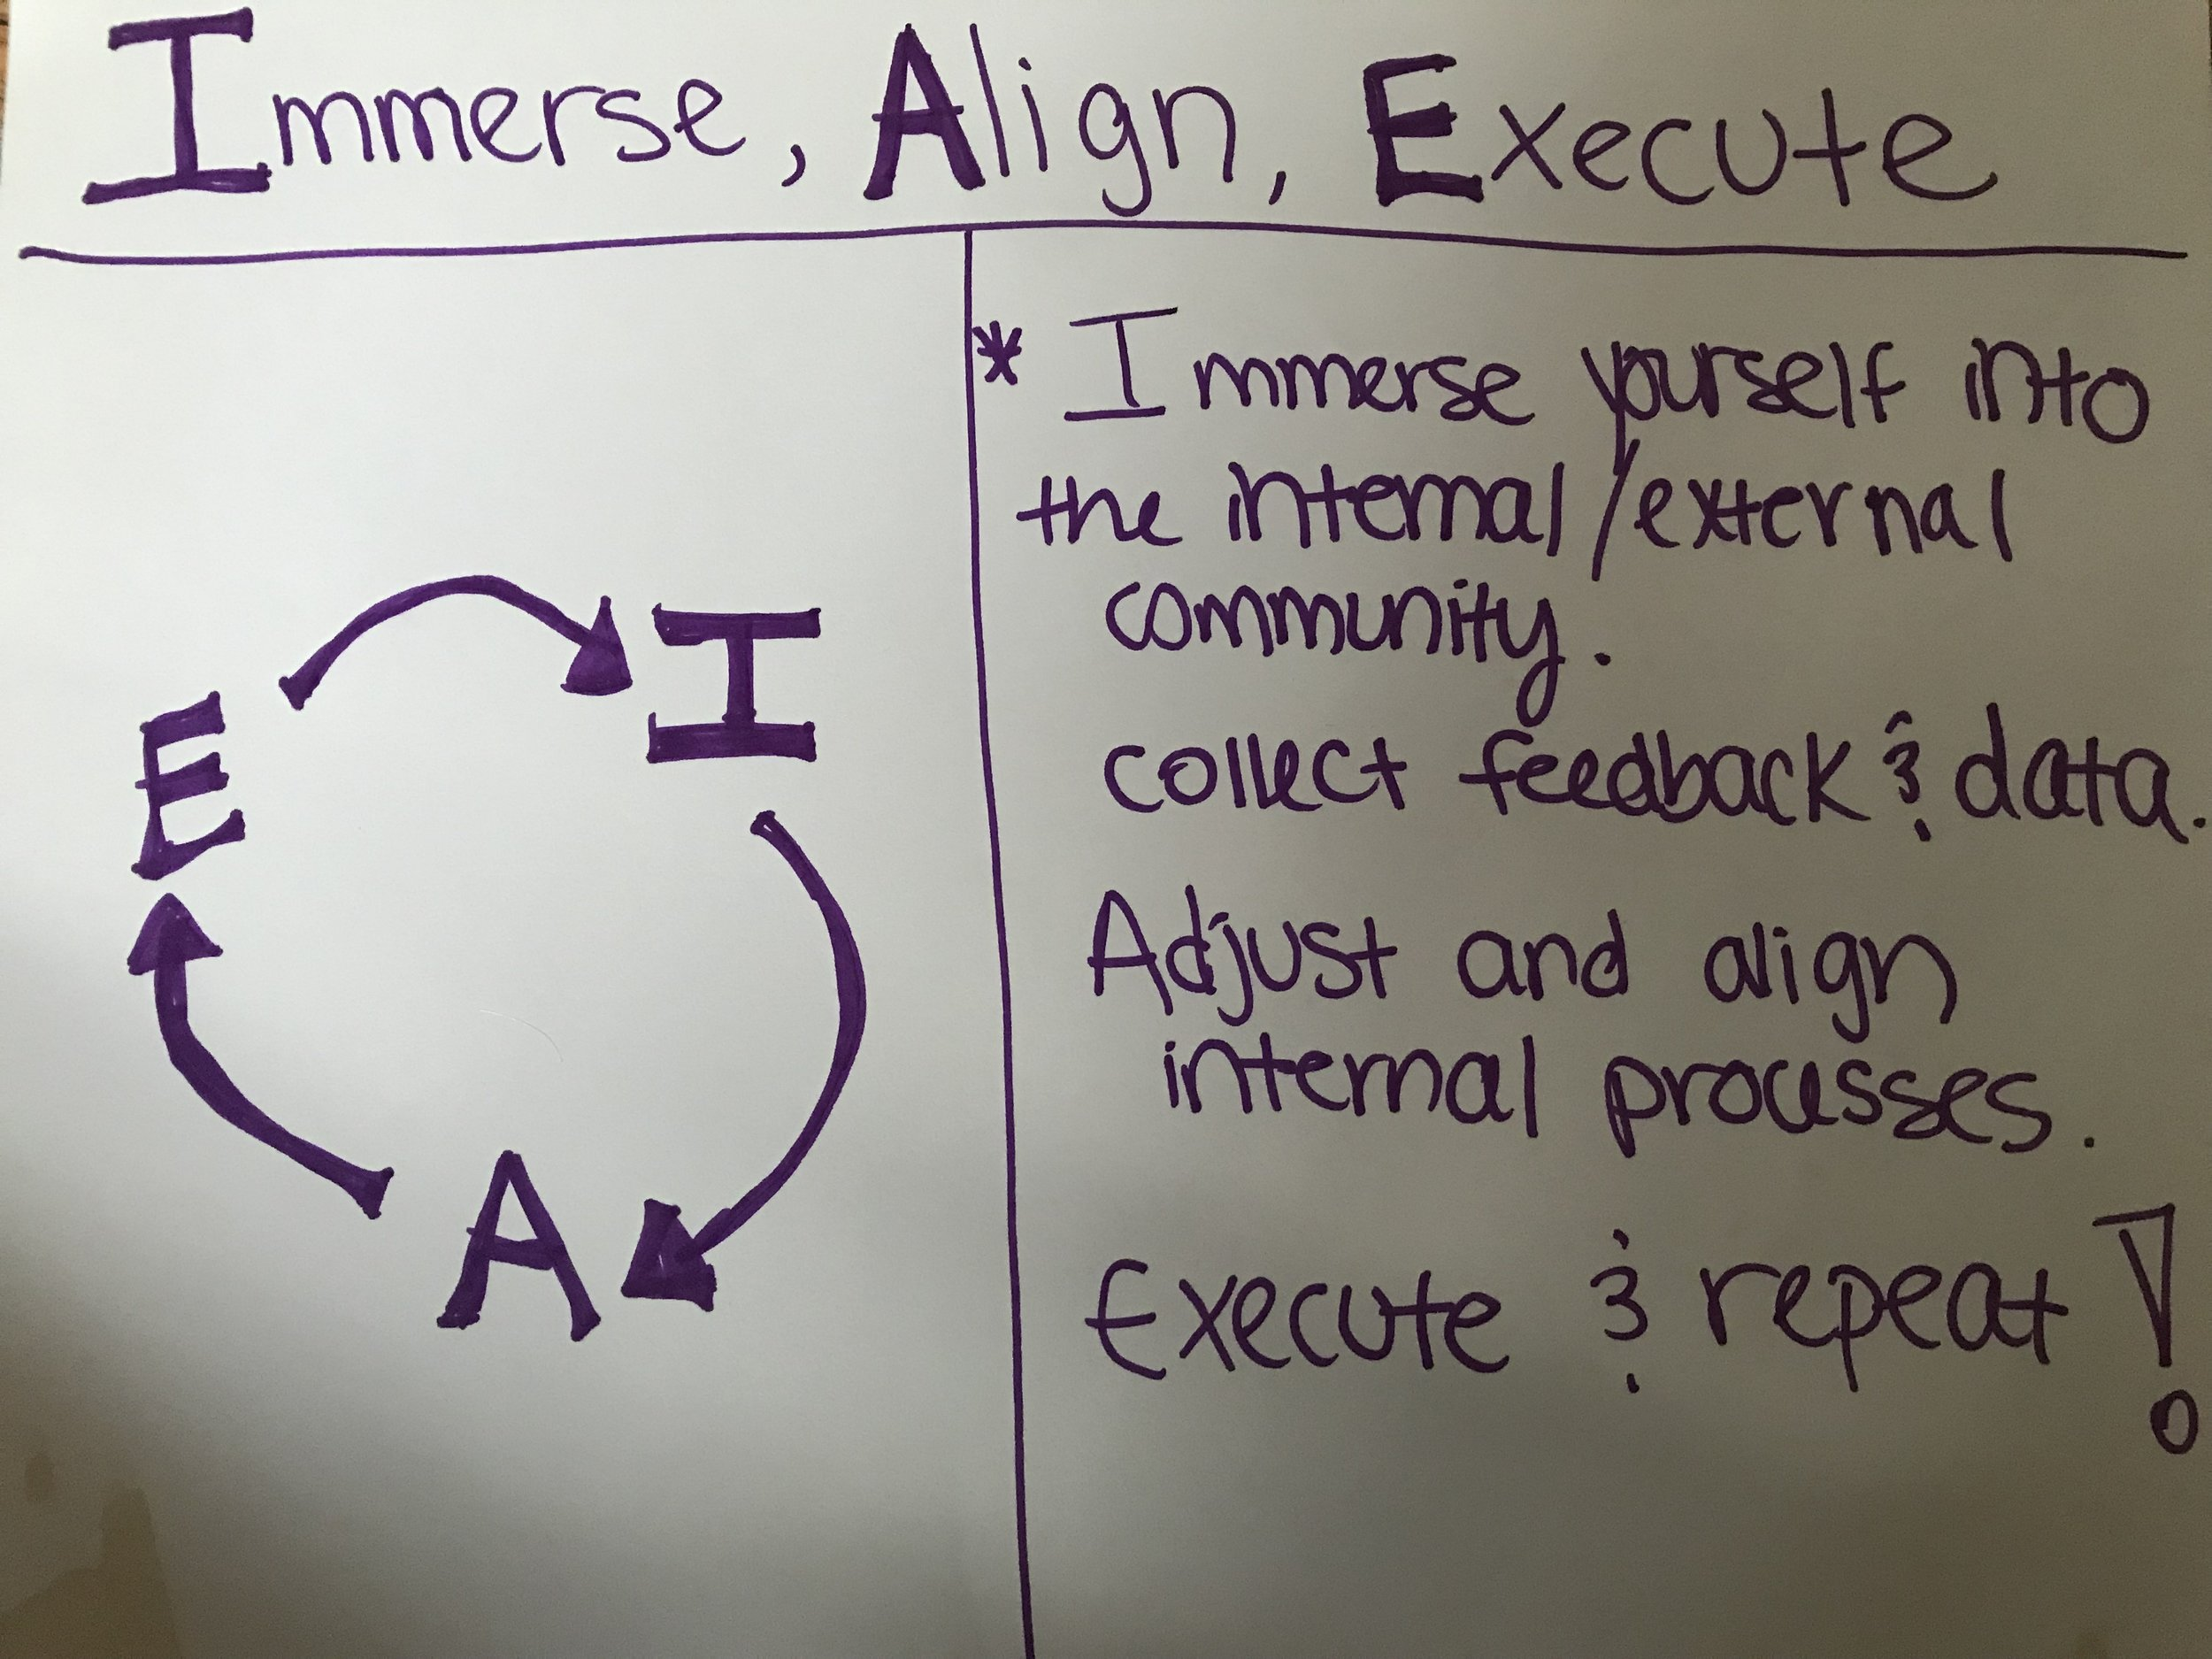 Immerse, Align, Execute